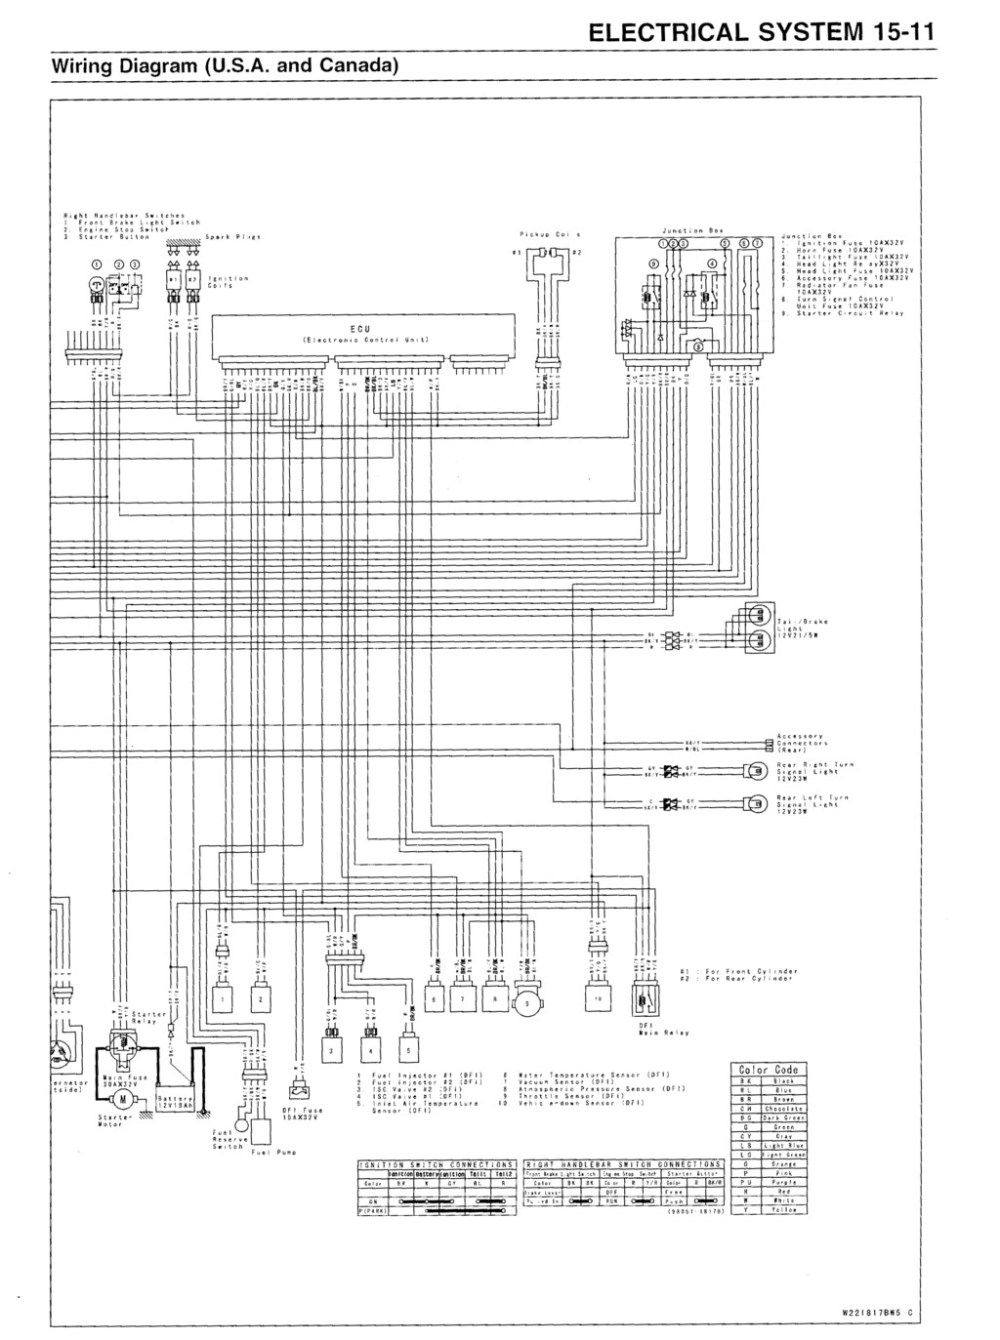 medium resolution of 1996 kawasaki vulcan 1500 wiring diagram wiring diagram databasevulcan wiring diagrams gadget u0027s fixit page